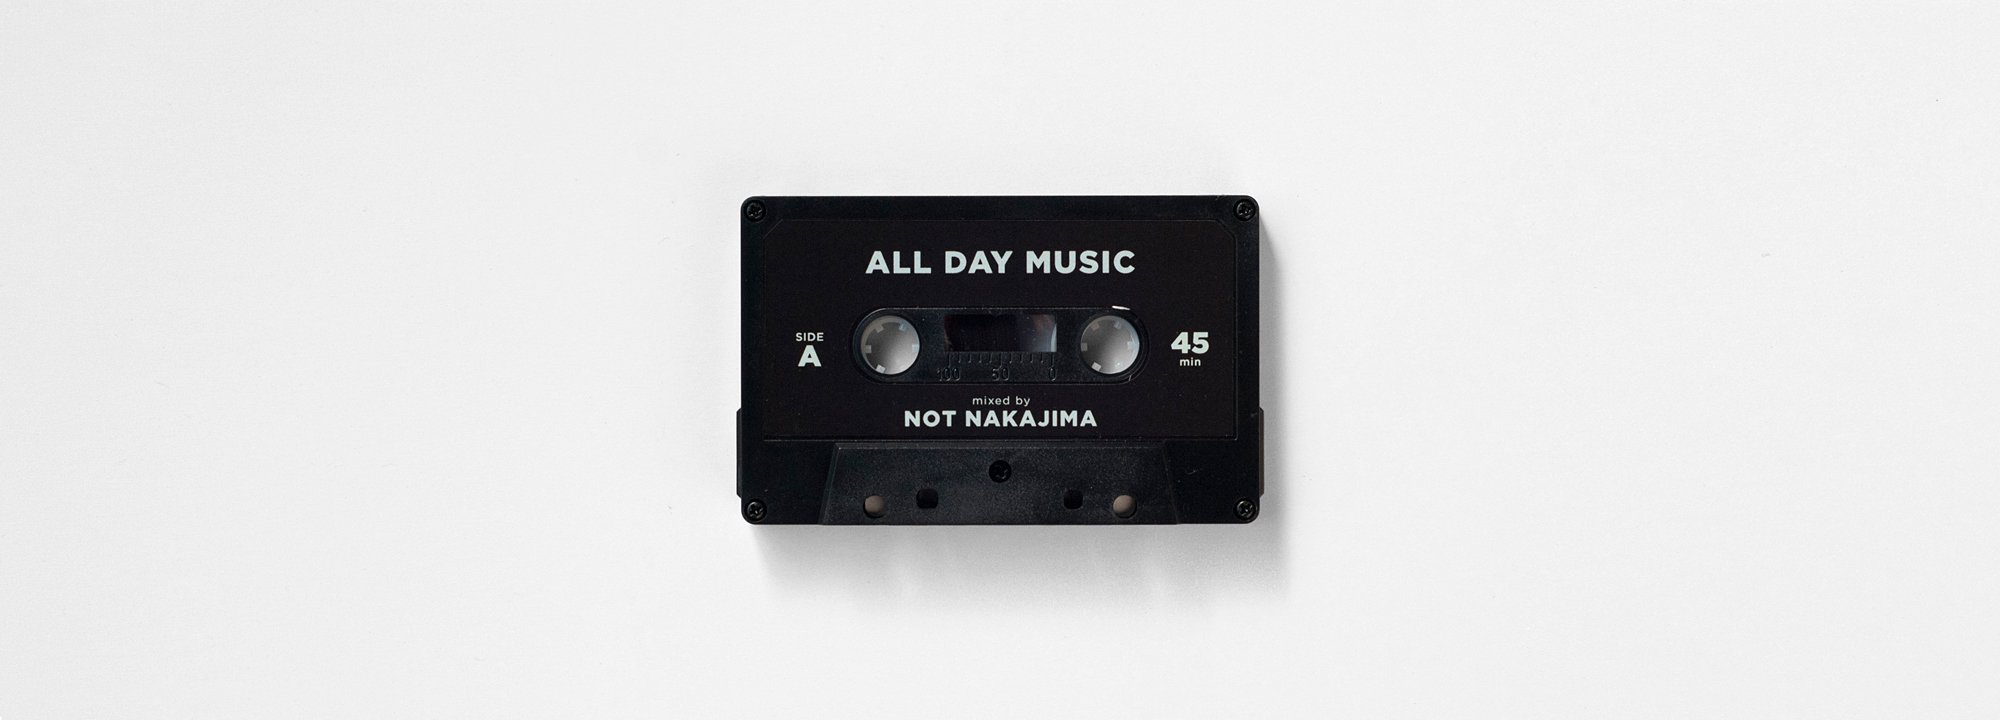 "【BROS限定】DL Mix ""ALL DAY MUSIC #6"" Mixed by NOT NAKAJIMA"